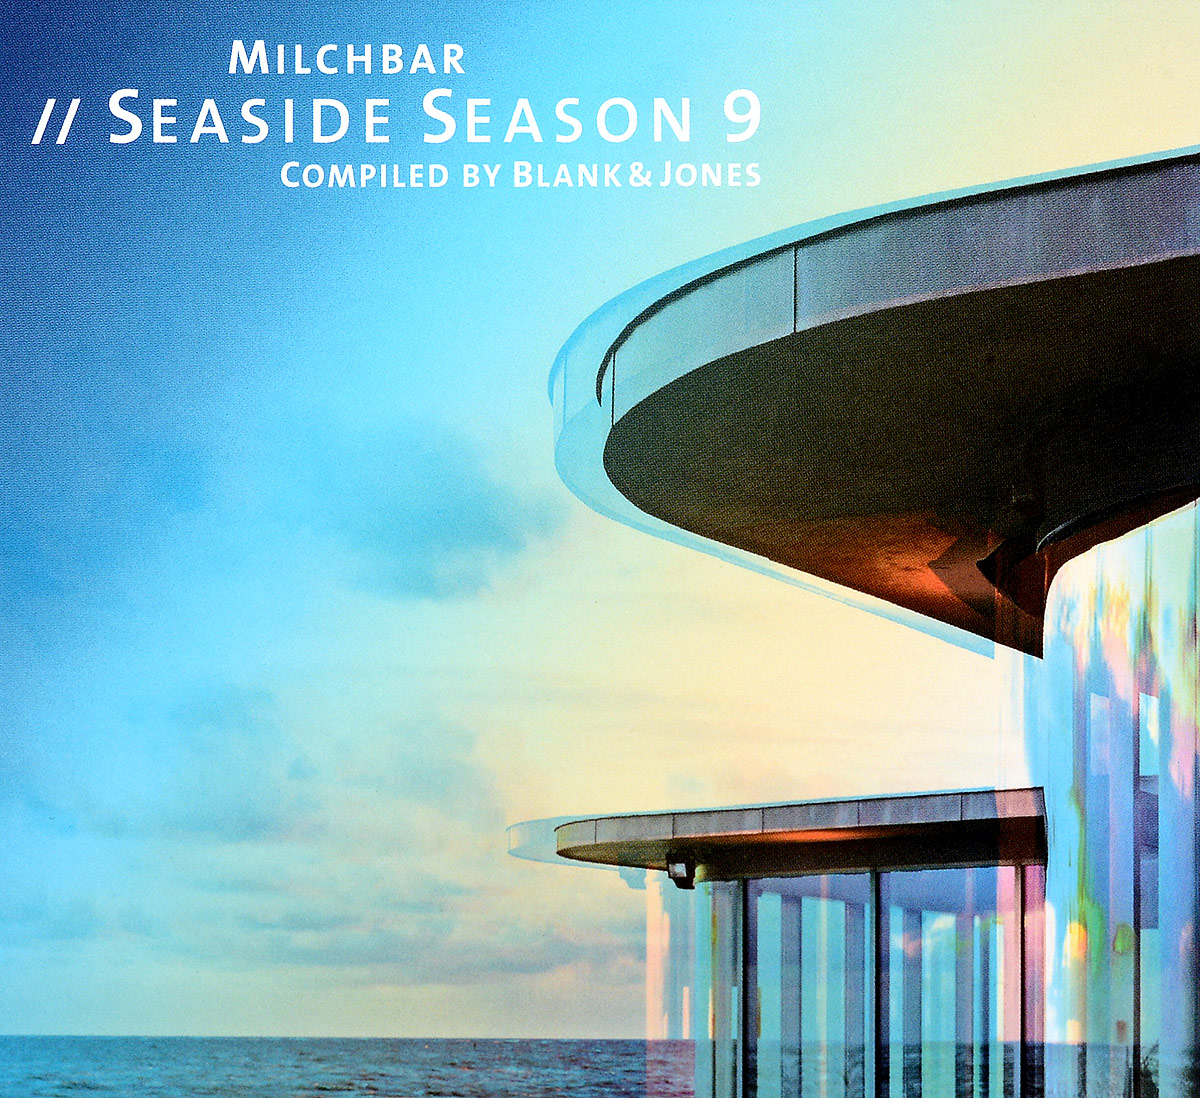 Zakazat.ru Blank & Jones. Milchbar 9 Seaside Season